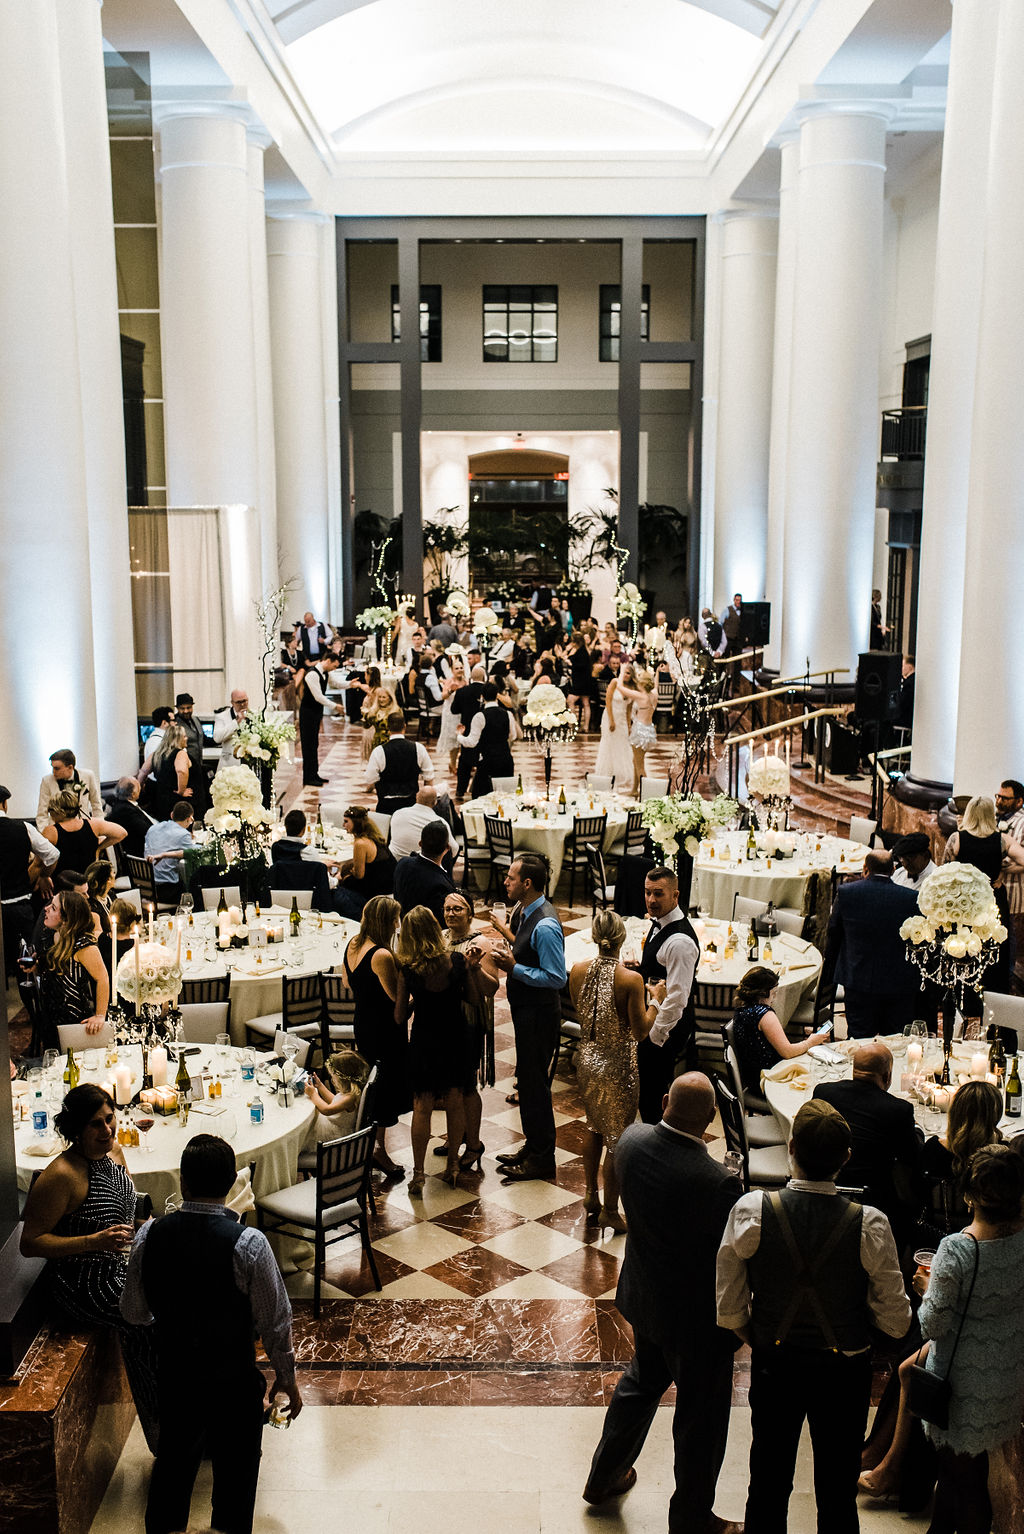 Great gatsby themed wedding at The Goodwin Hotel in Hartford, CT - Pearl Weddings & Events